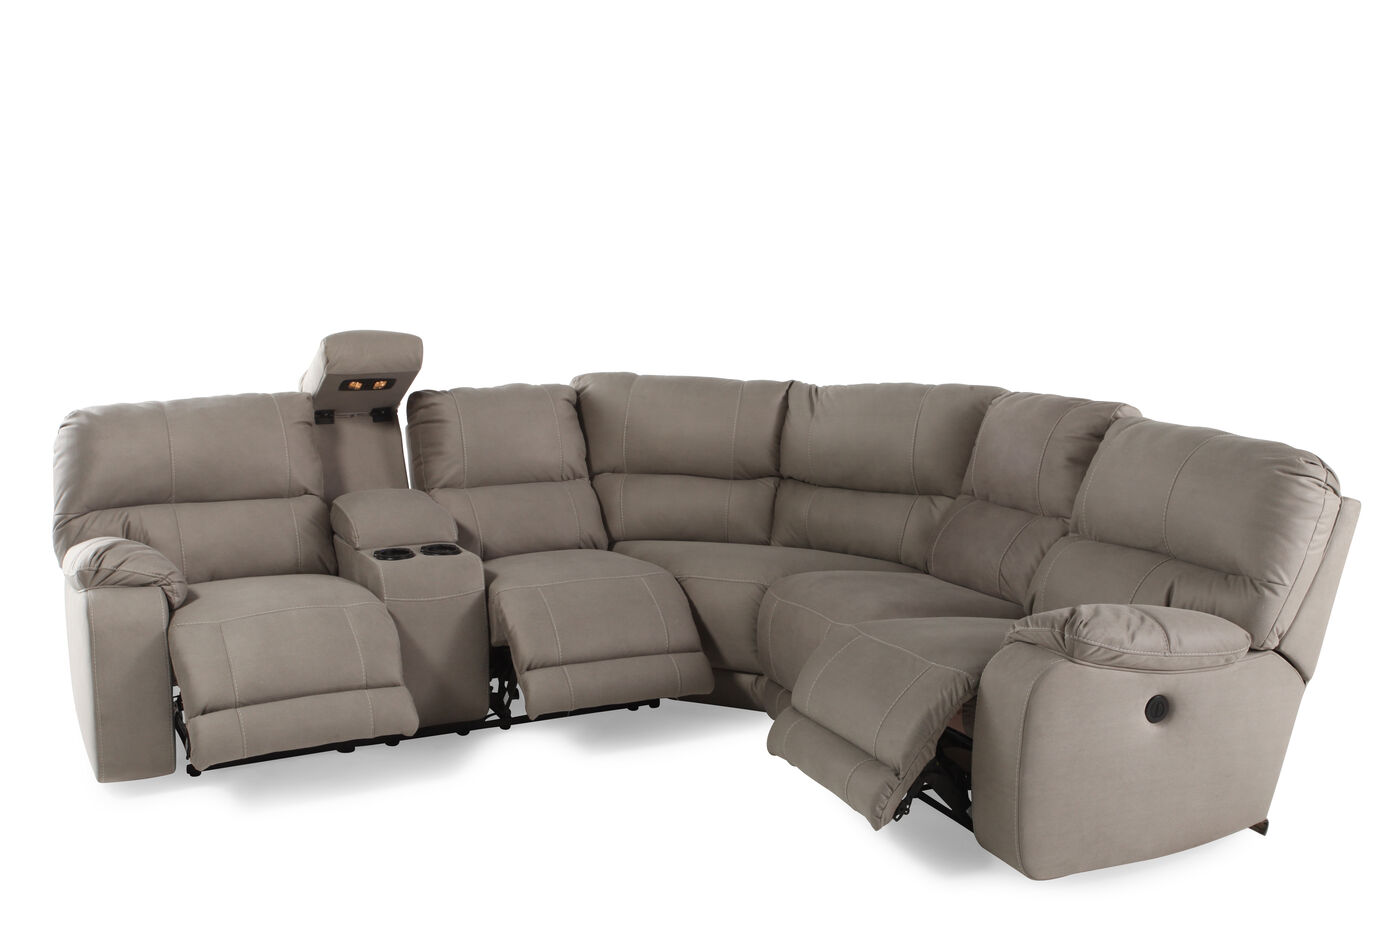 Three piece microfiber 103quot sectional in putty gray for Sectional sofa 103